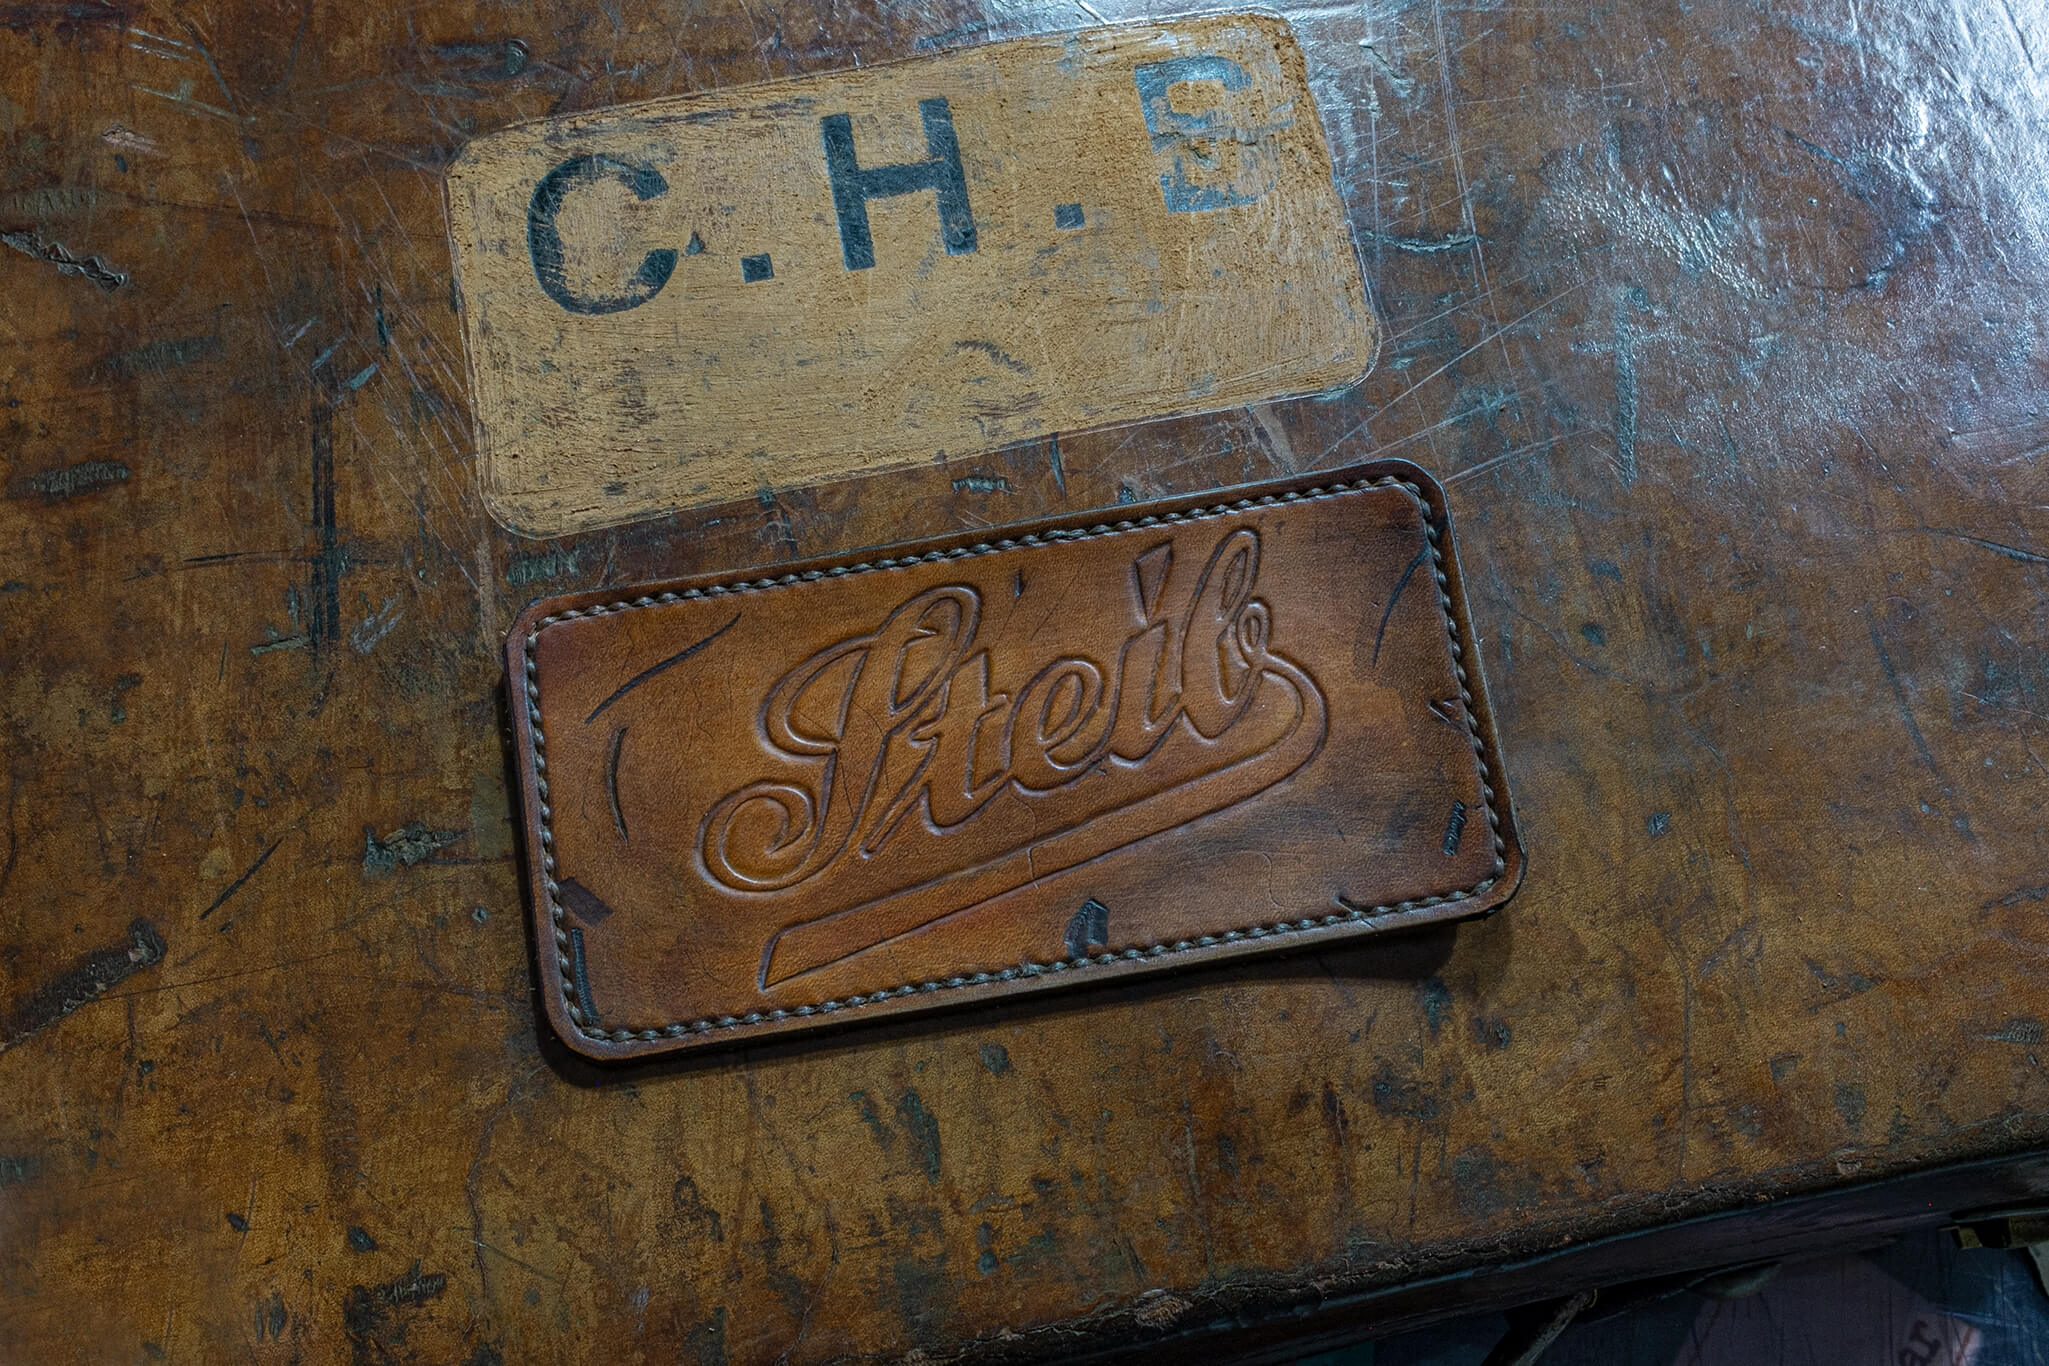 The finished STeib logo patch | Duke & Sons Leather